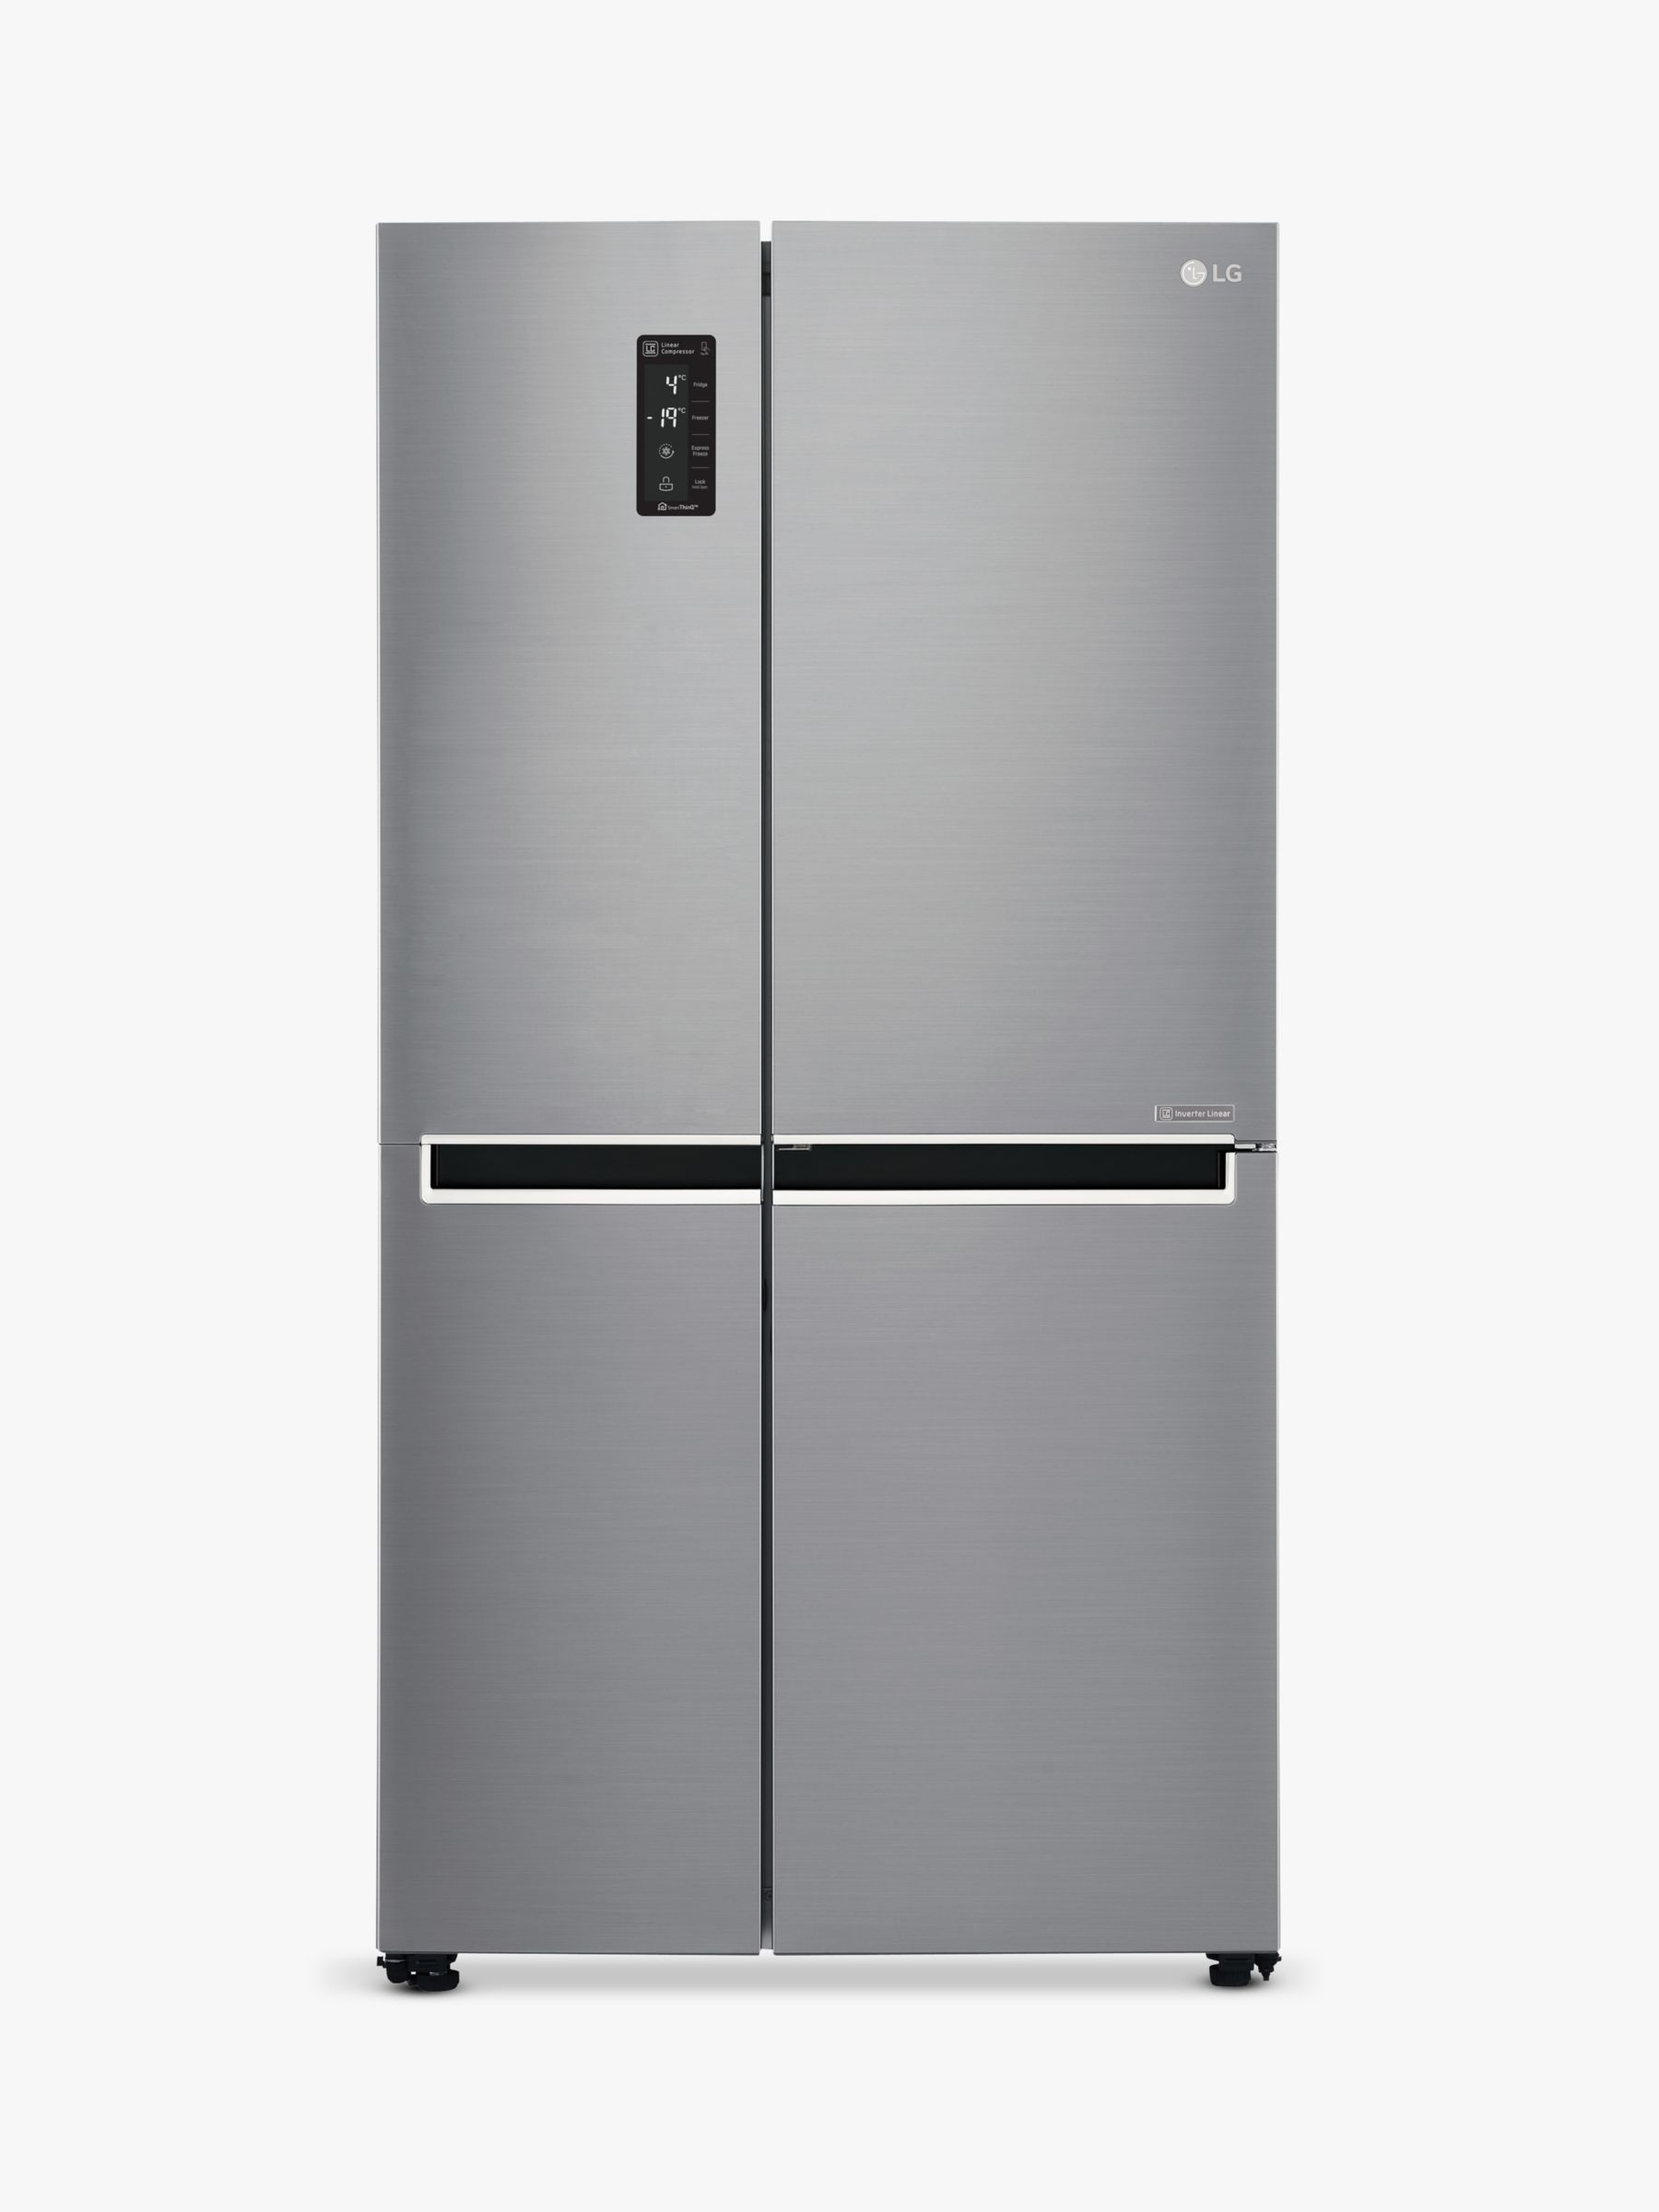 LG LG GSB760PZXV American Style Fridge Freezer, A+ Energy Rating, 90cm Wide, Silver